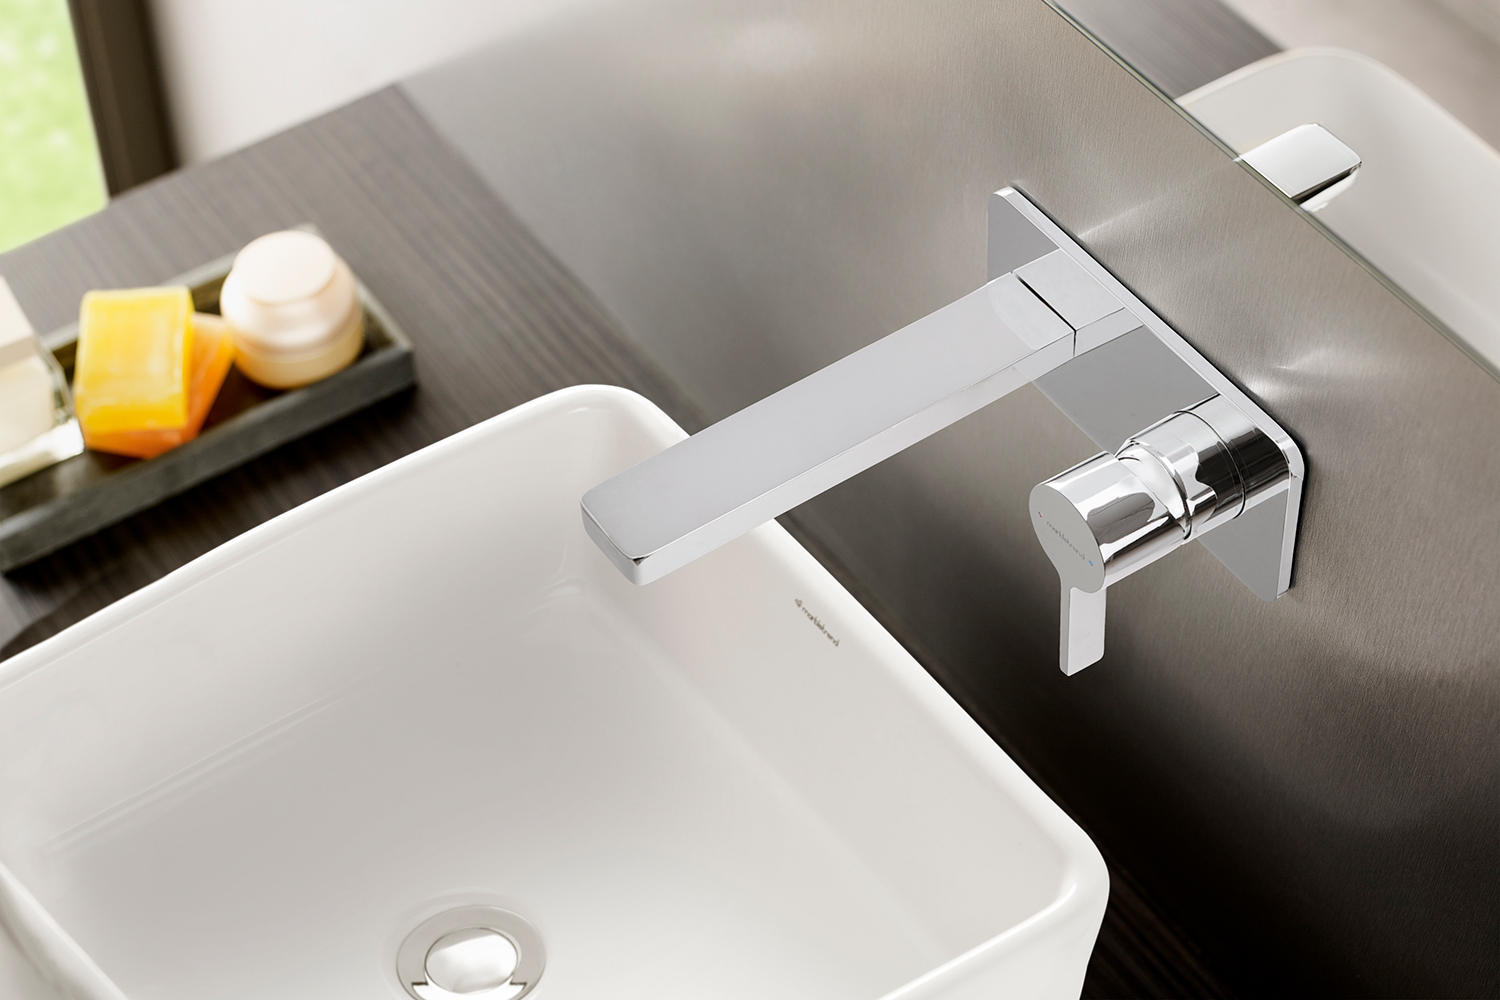 Investing in a stylish, reliable bathroom has never been easier